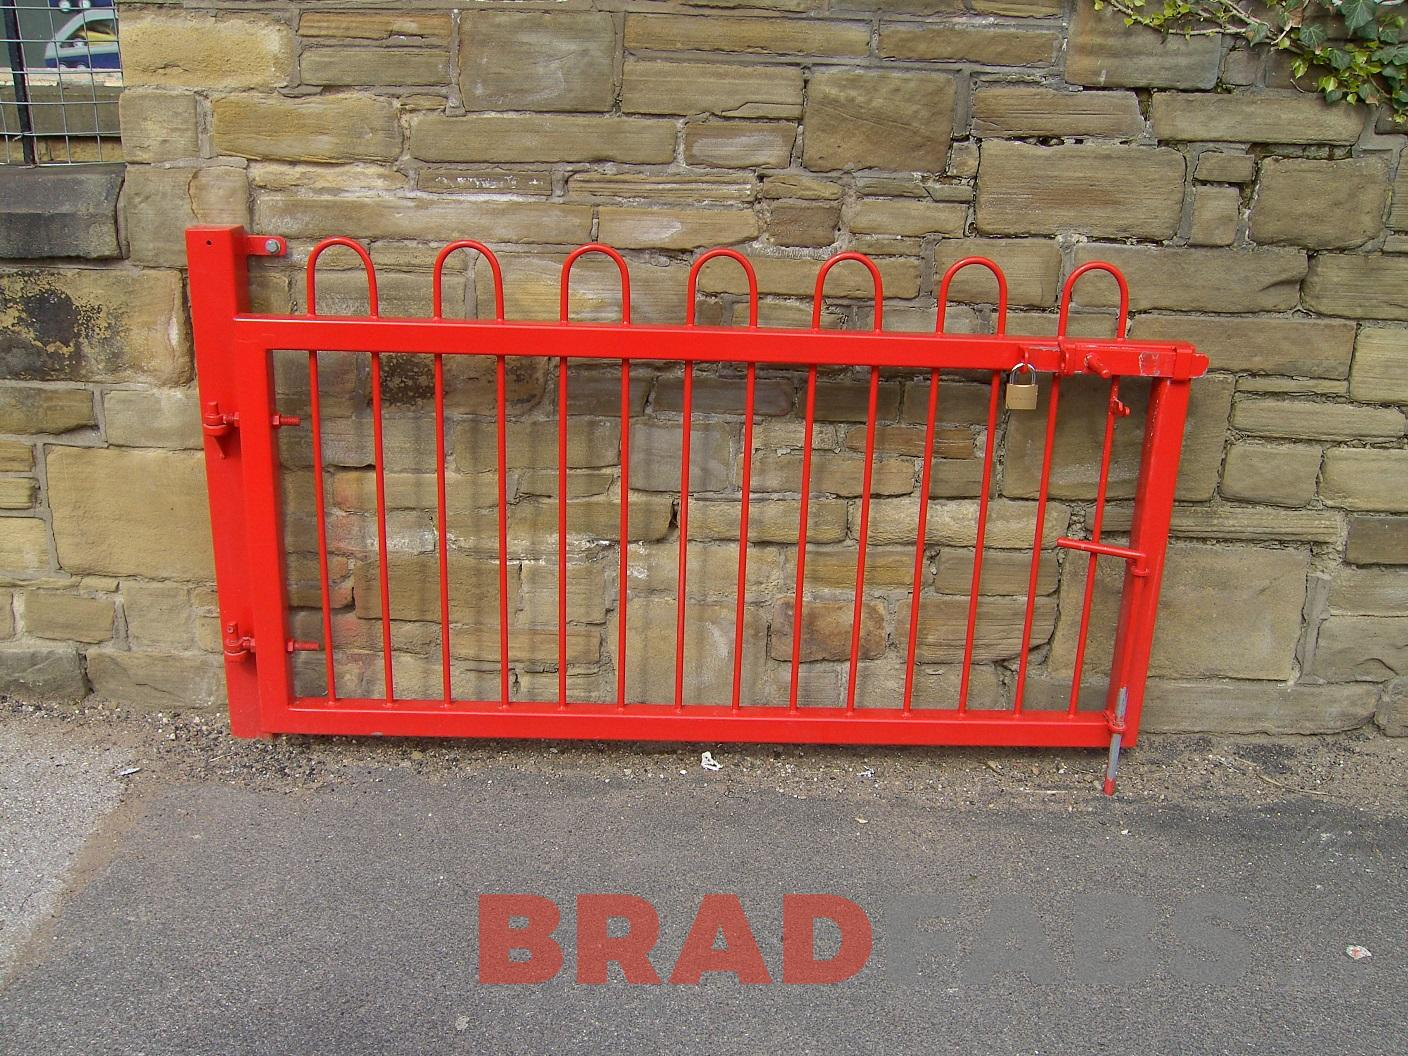 Bespoke mild steel, galvanised and powder coated red gates for a primary school by Bradfabs Ltd